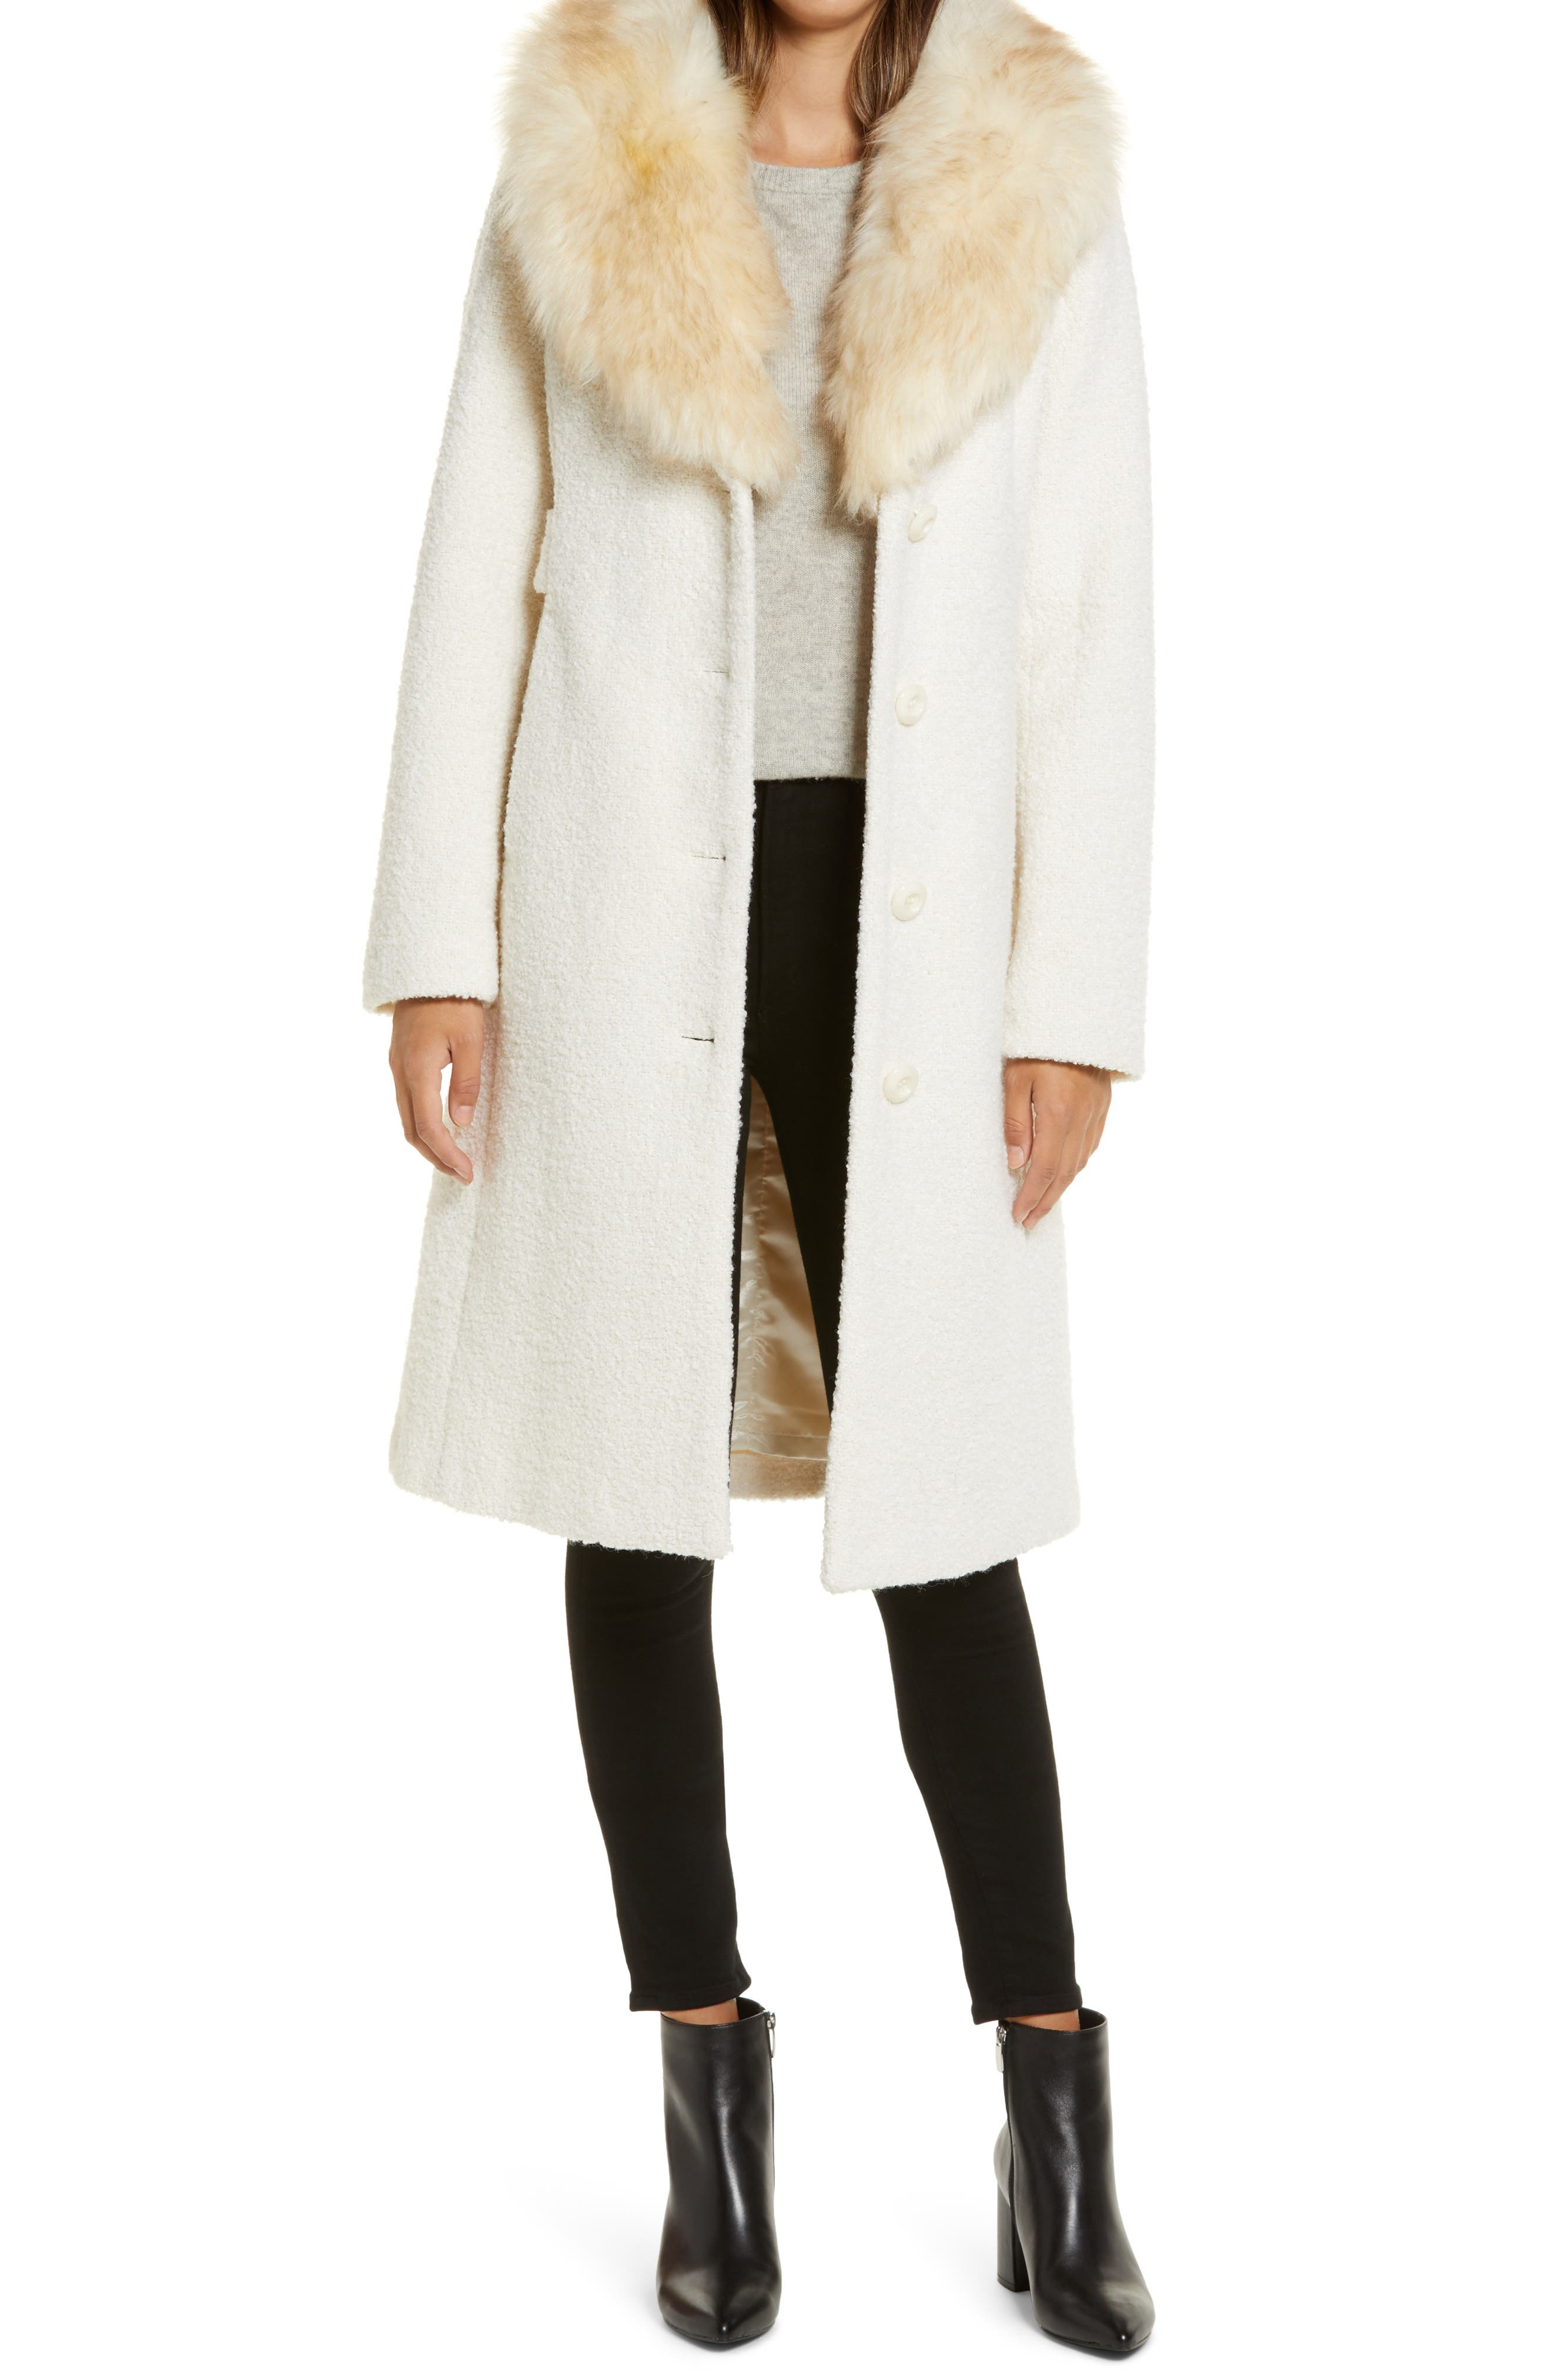 70s Jackets, Furs, Vests, Ponchos Womens Gallery Wool Blend Coat With Removable Faux Fur Collar Size X-Large - Ivory $174.90 AT vintagedancer.com